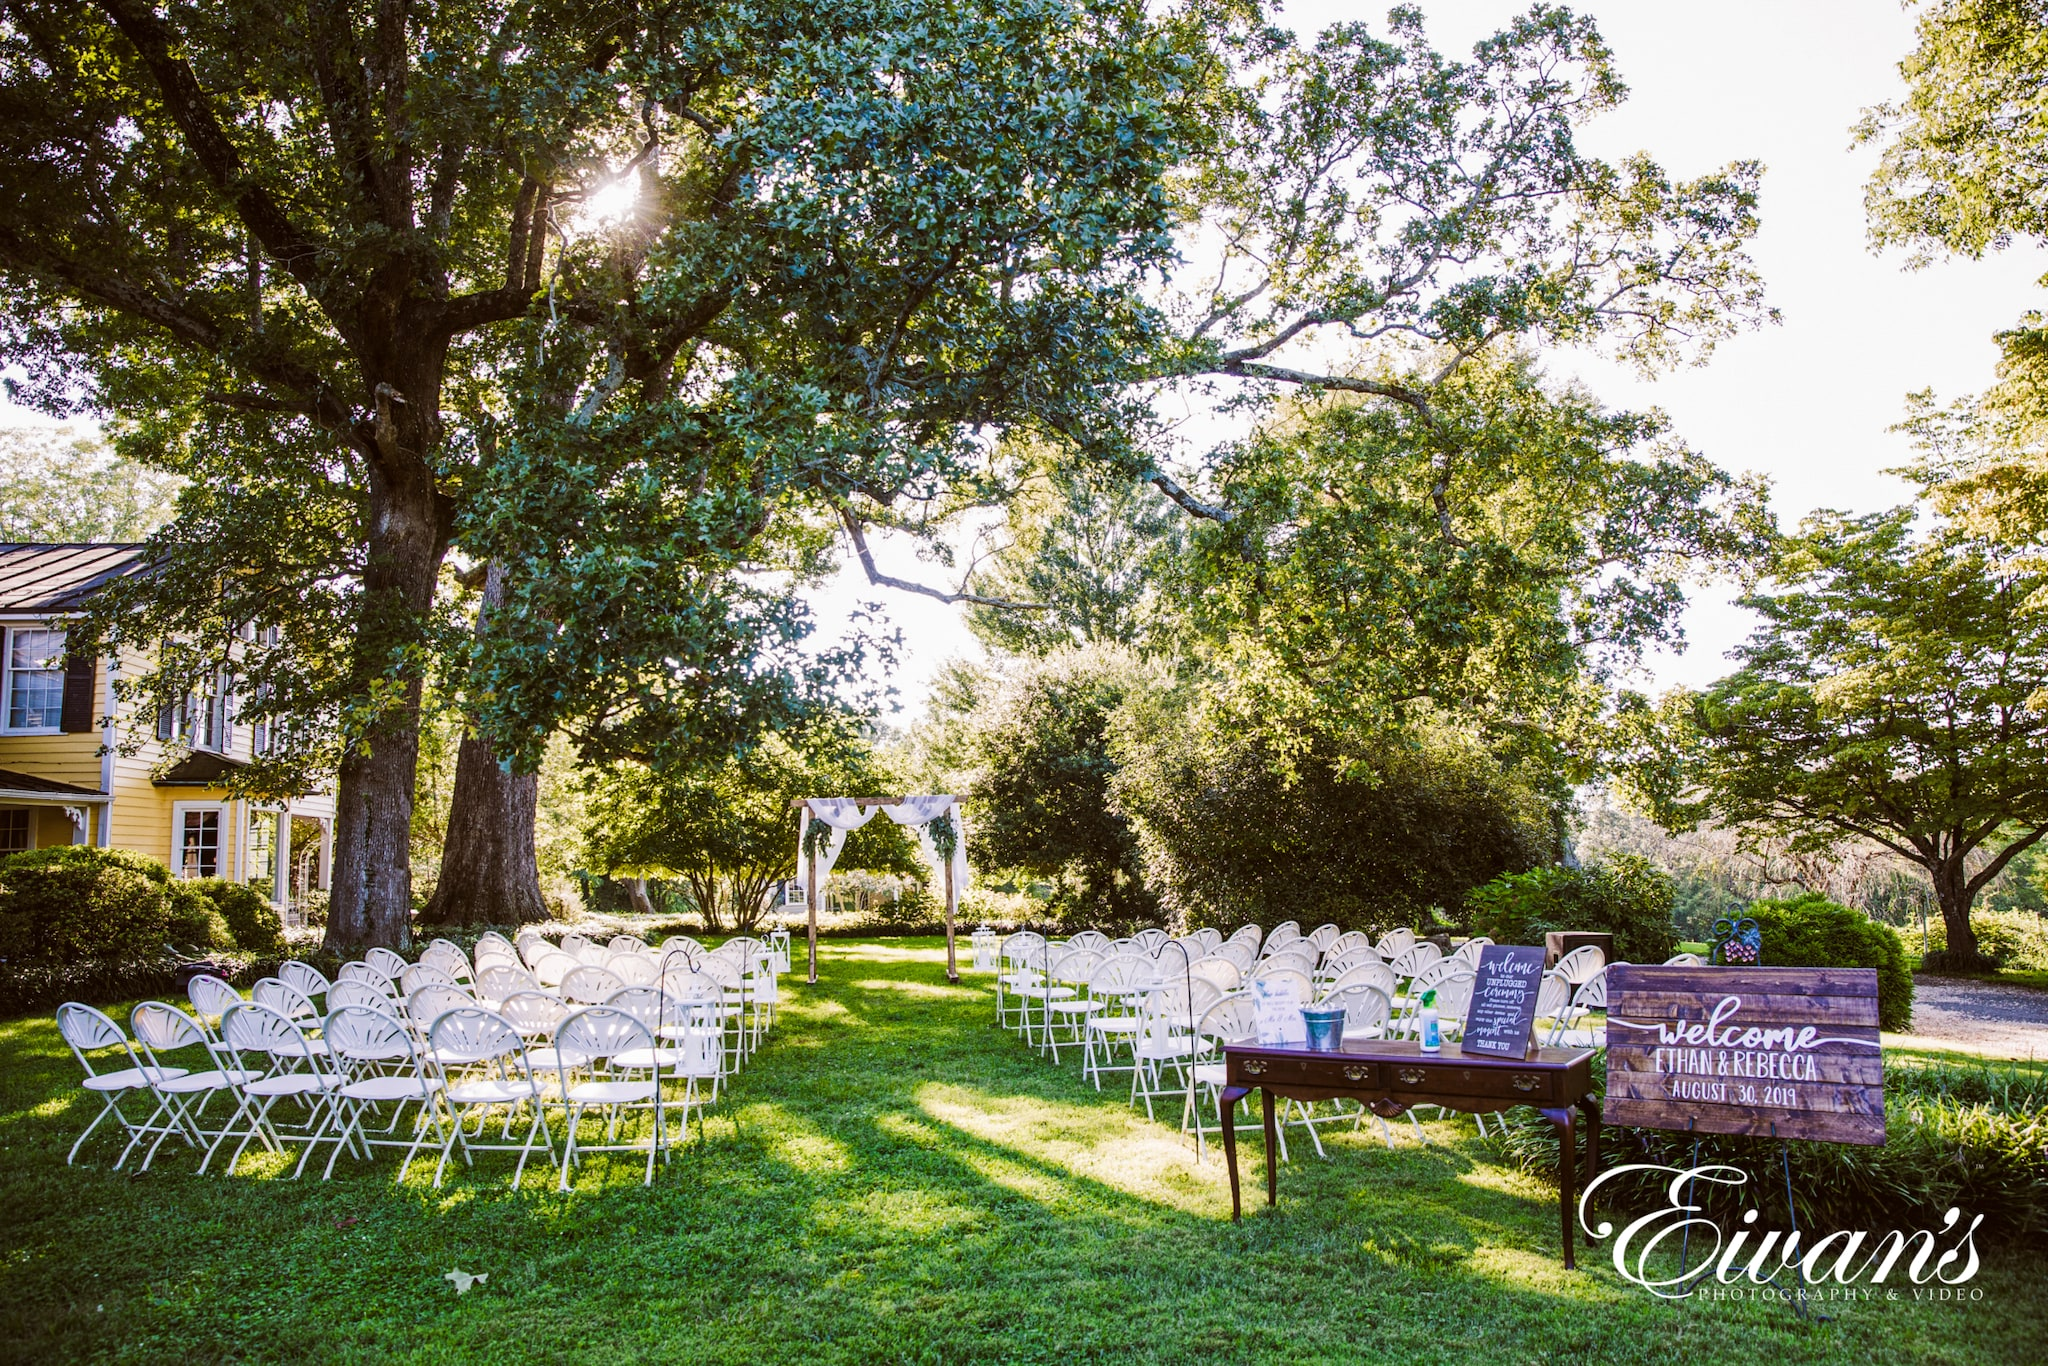 image of an outdoor wedding ceremony